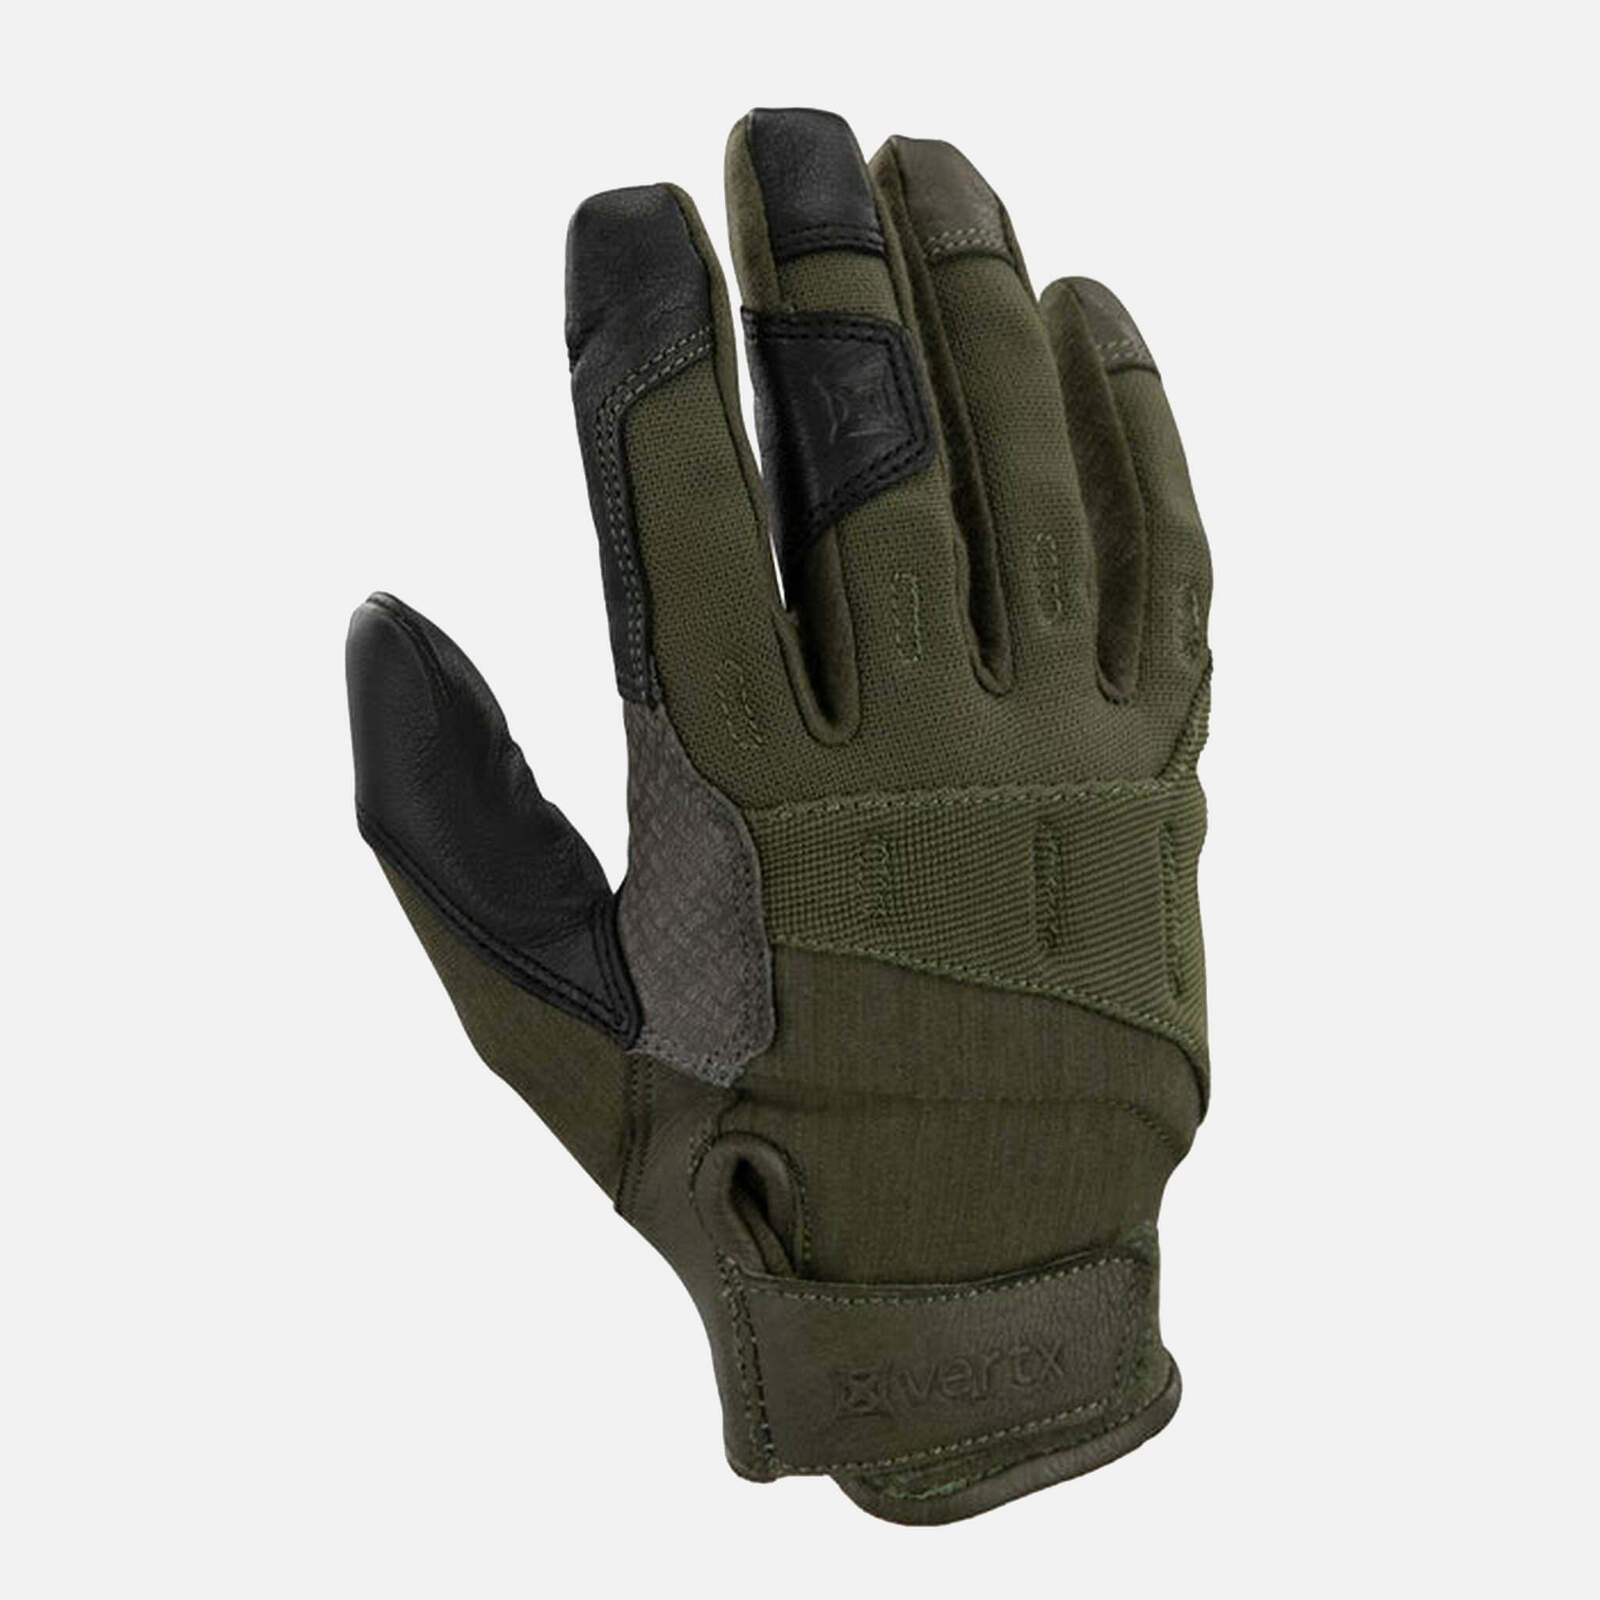 Move to Contact Glove - Vertx